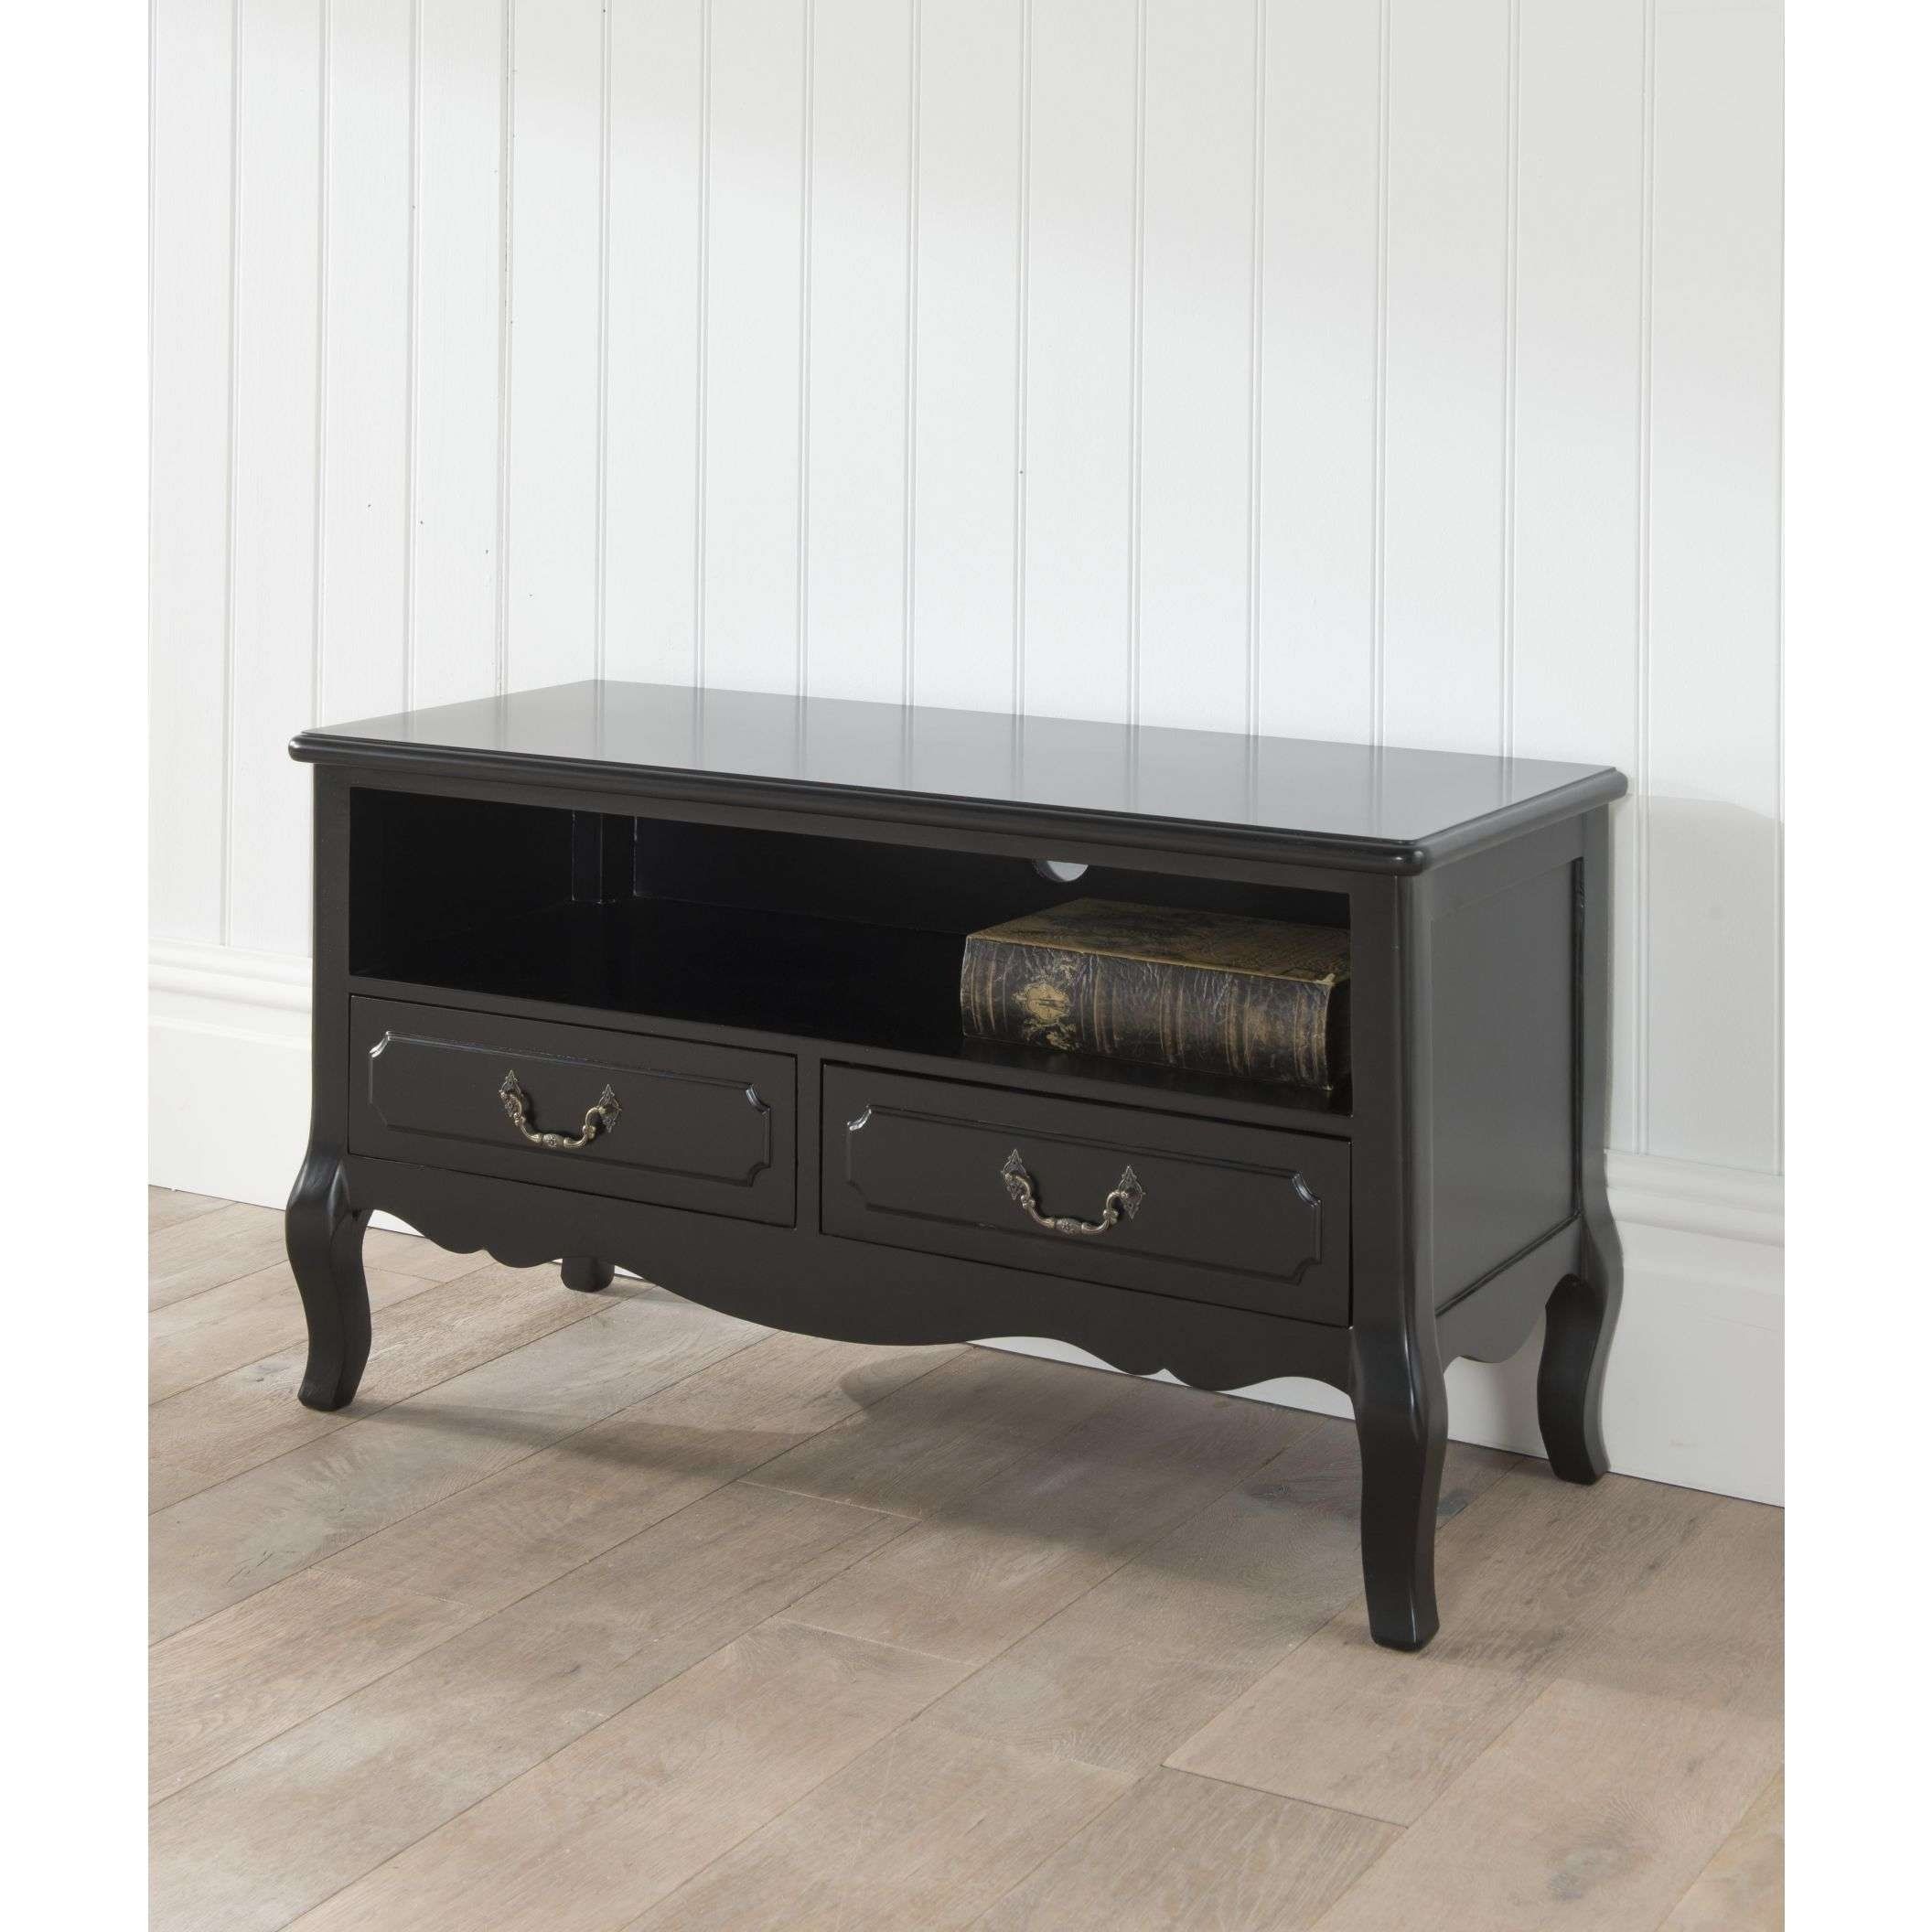 Antique French Tv Stand | Black French Style Furniture With French Tv Cabinets (View 3 of 20)